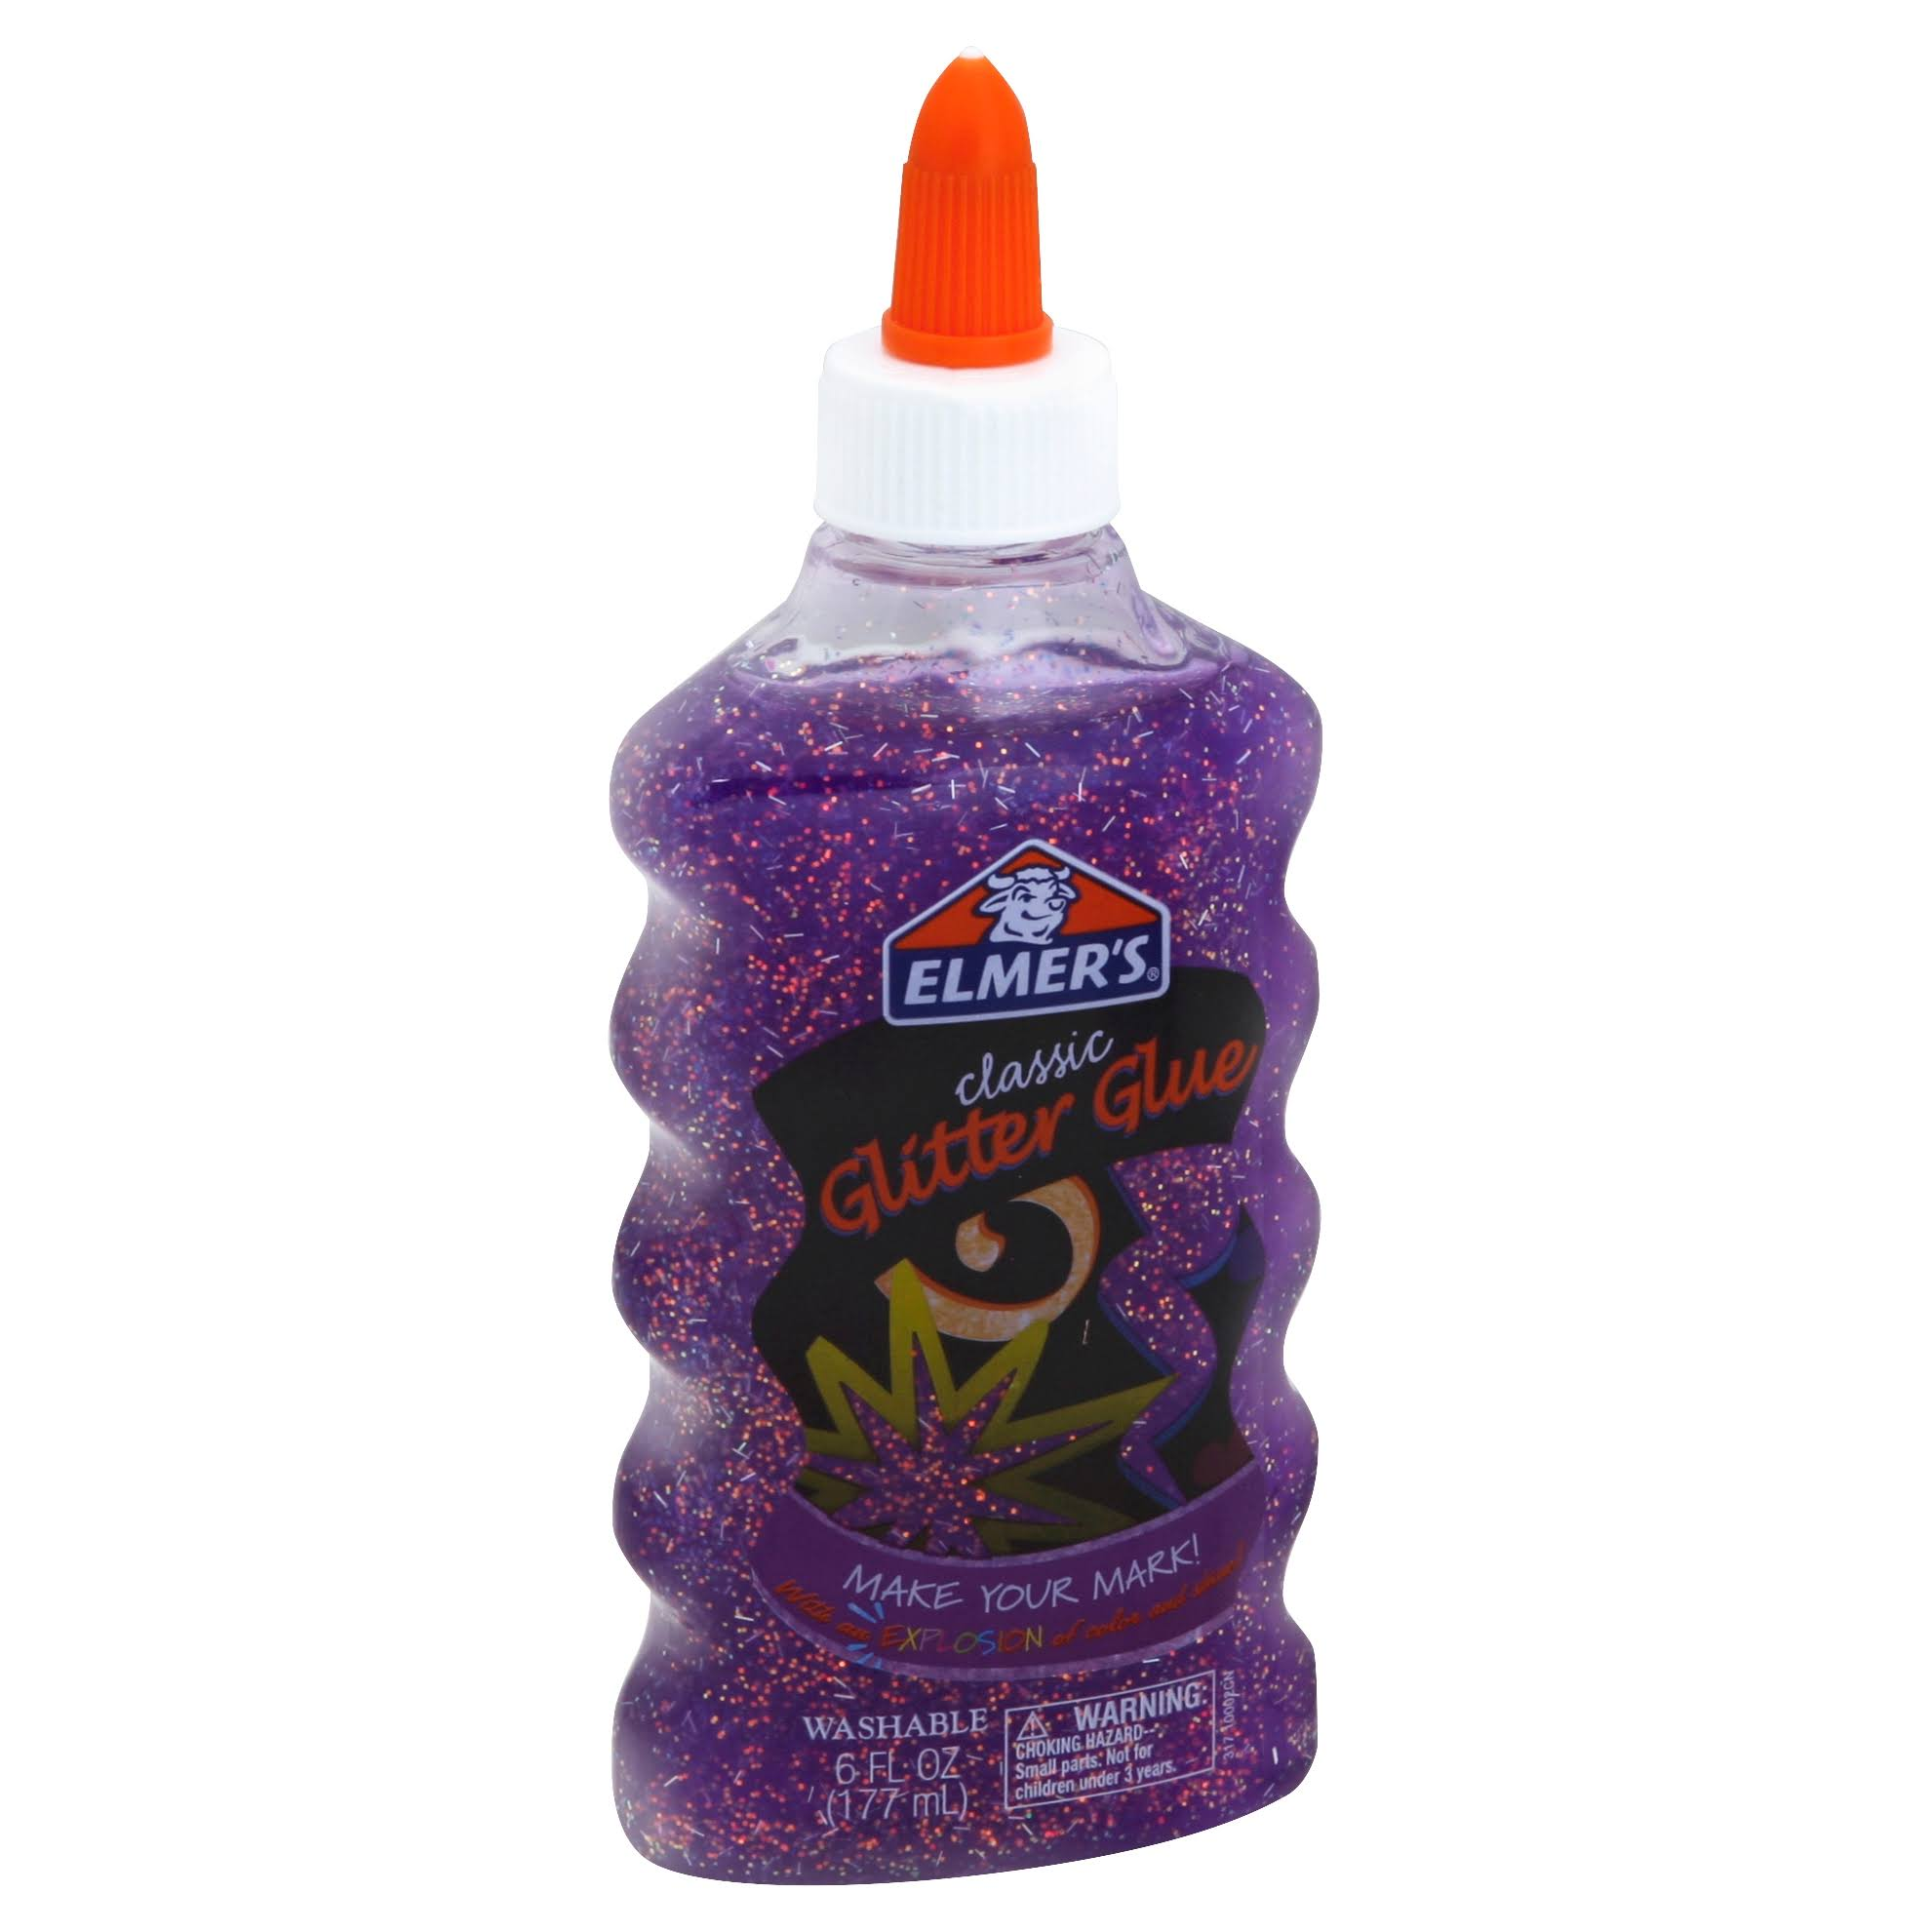 Elmer's Classic Glitter Glue - Purple, 6oz